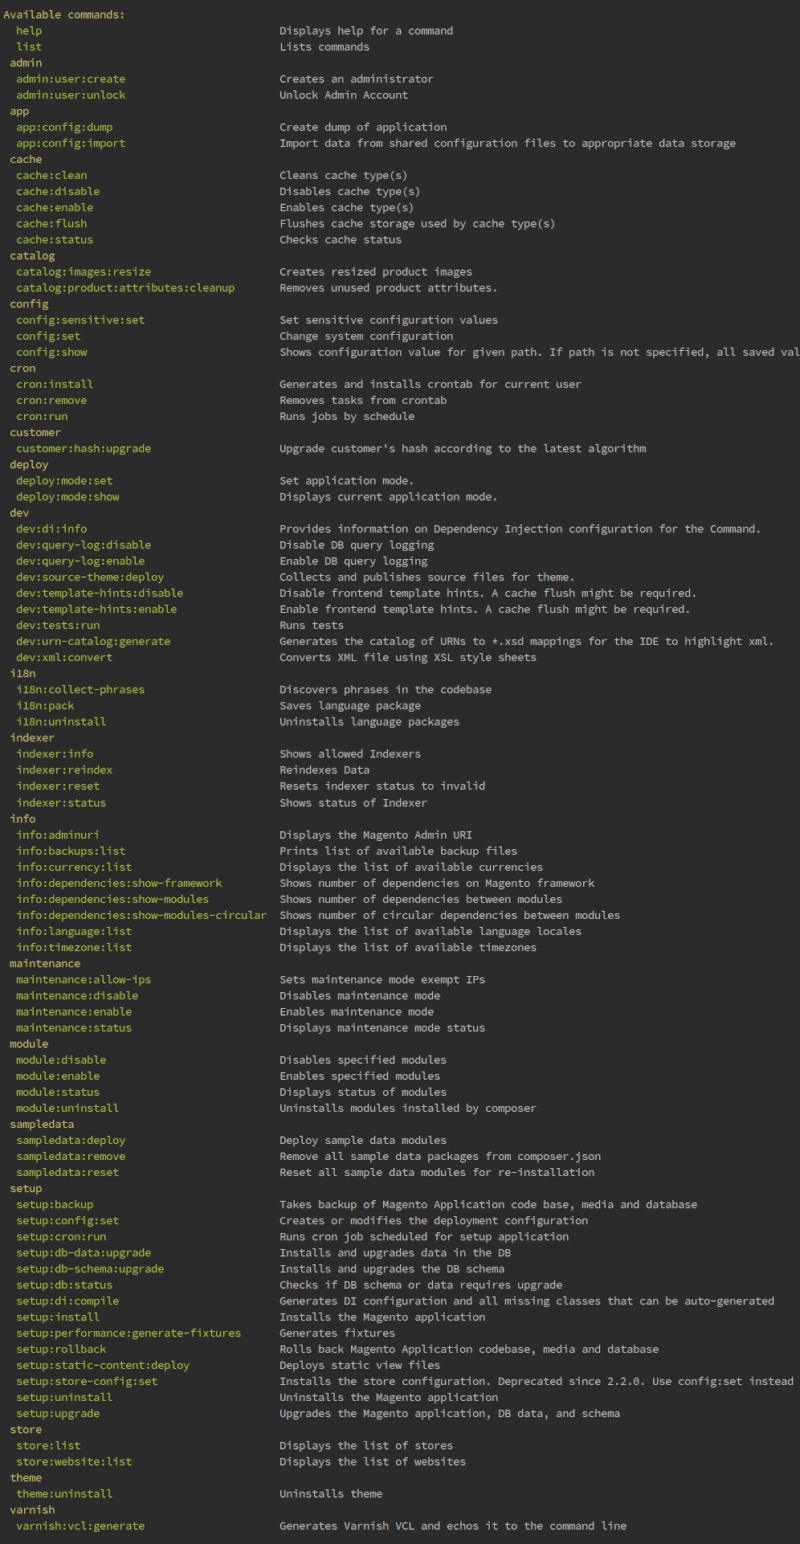 complete-list-of-commands